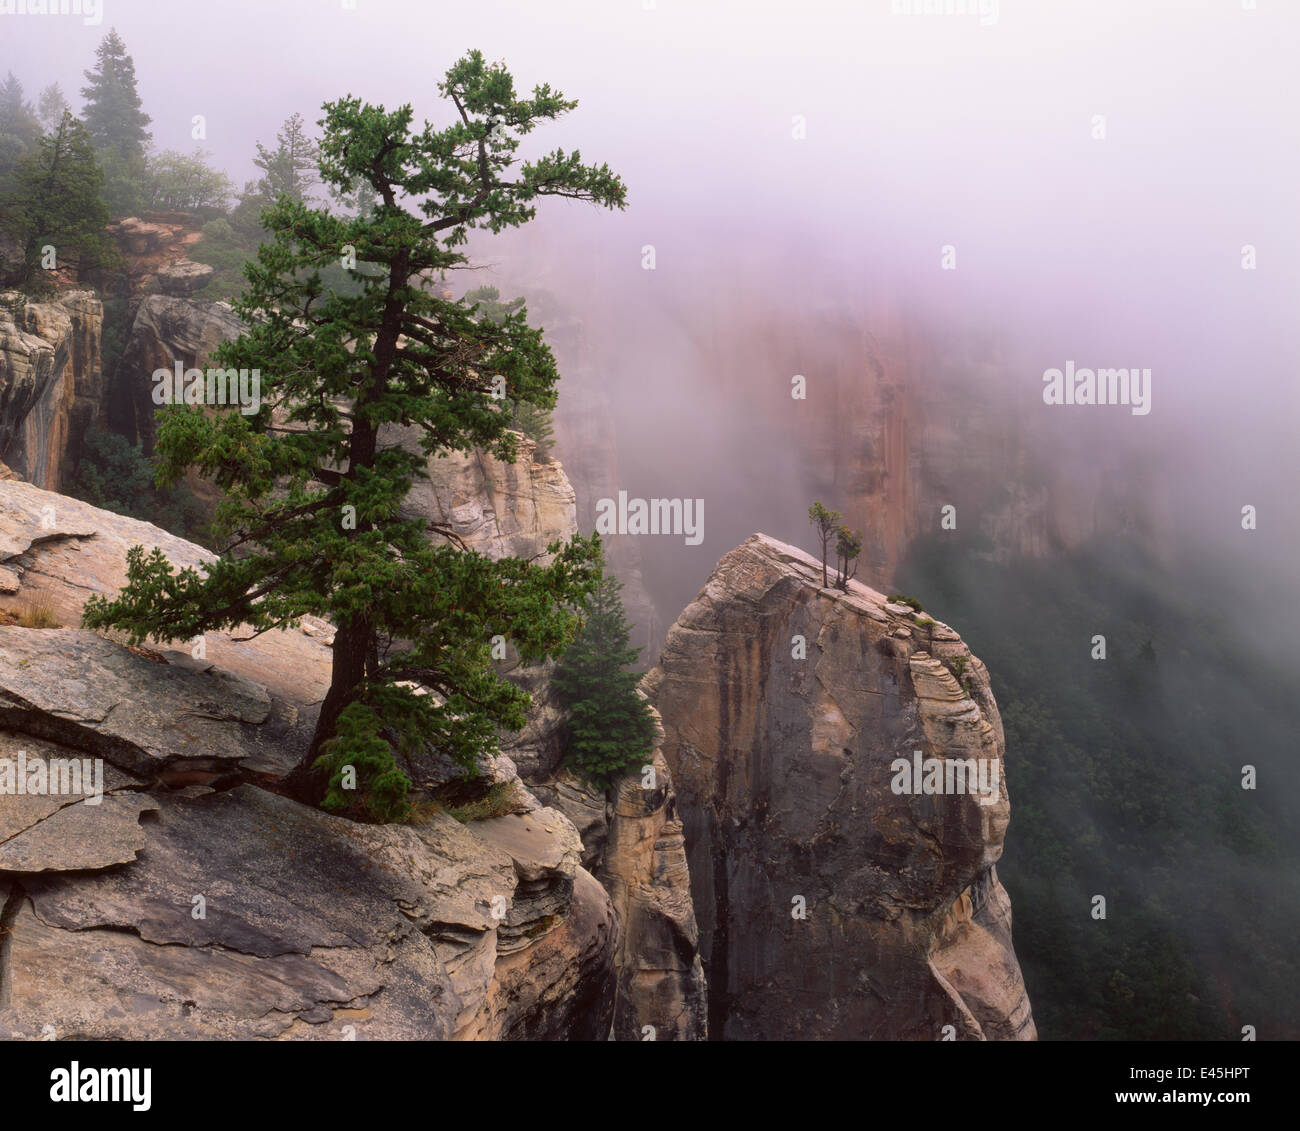 Pinyon pine (Pinus edulis) and Utah juniper (Juniperus osteosperma) on kaibab limestone spires in morning fog, North - Stock Image